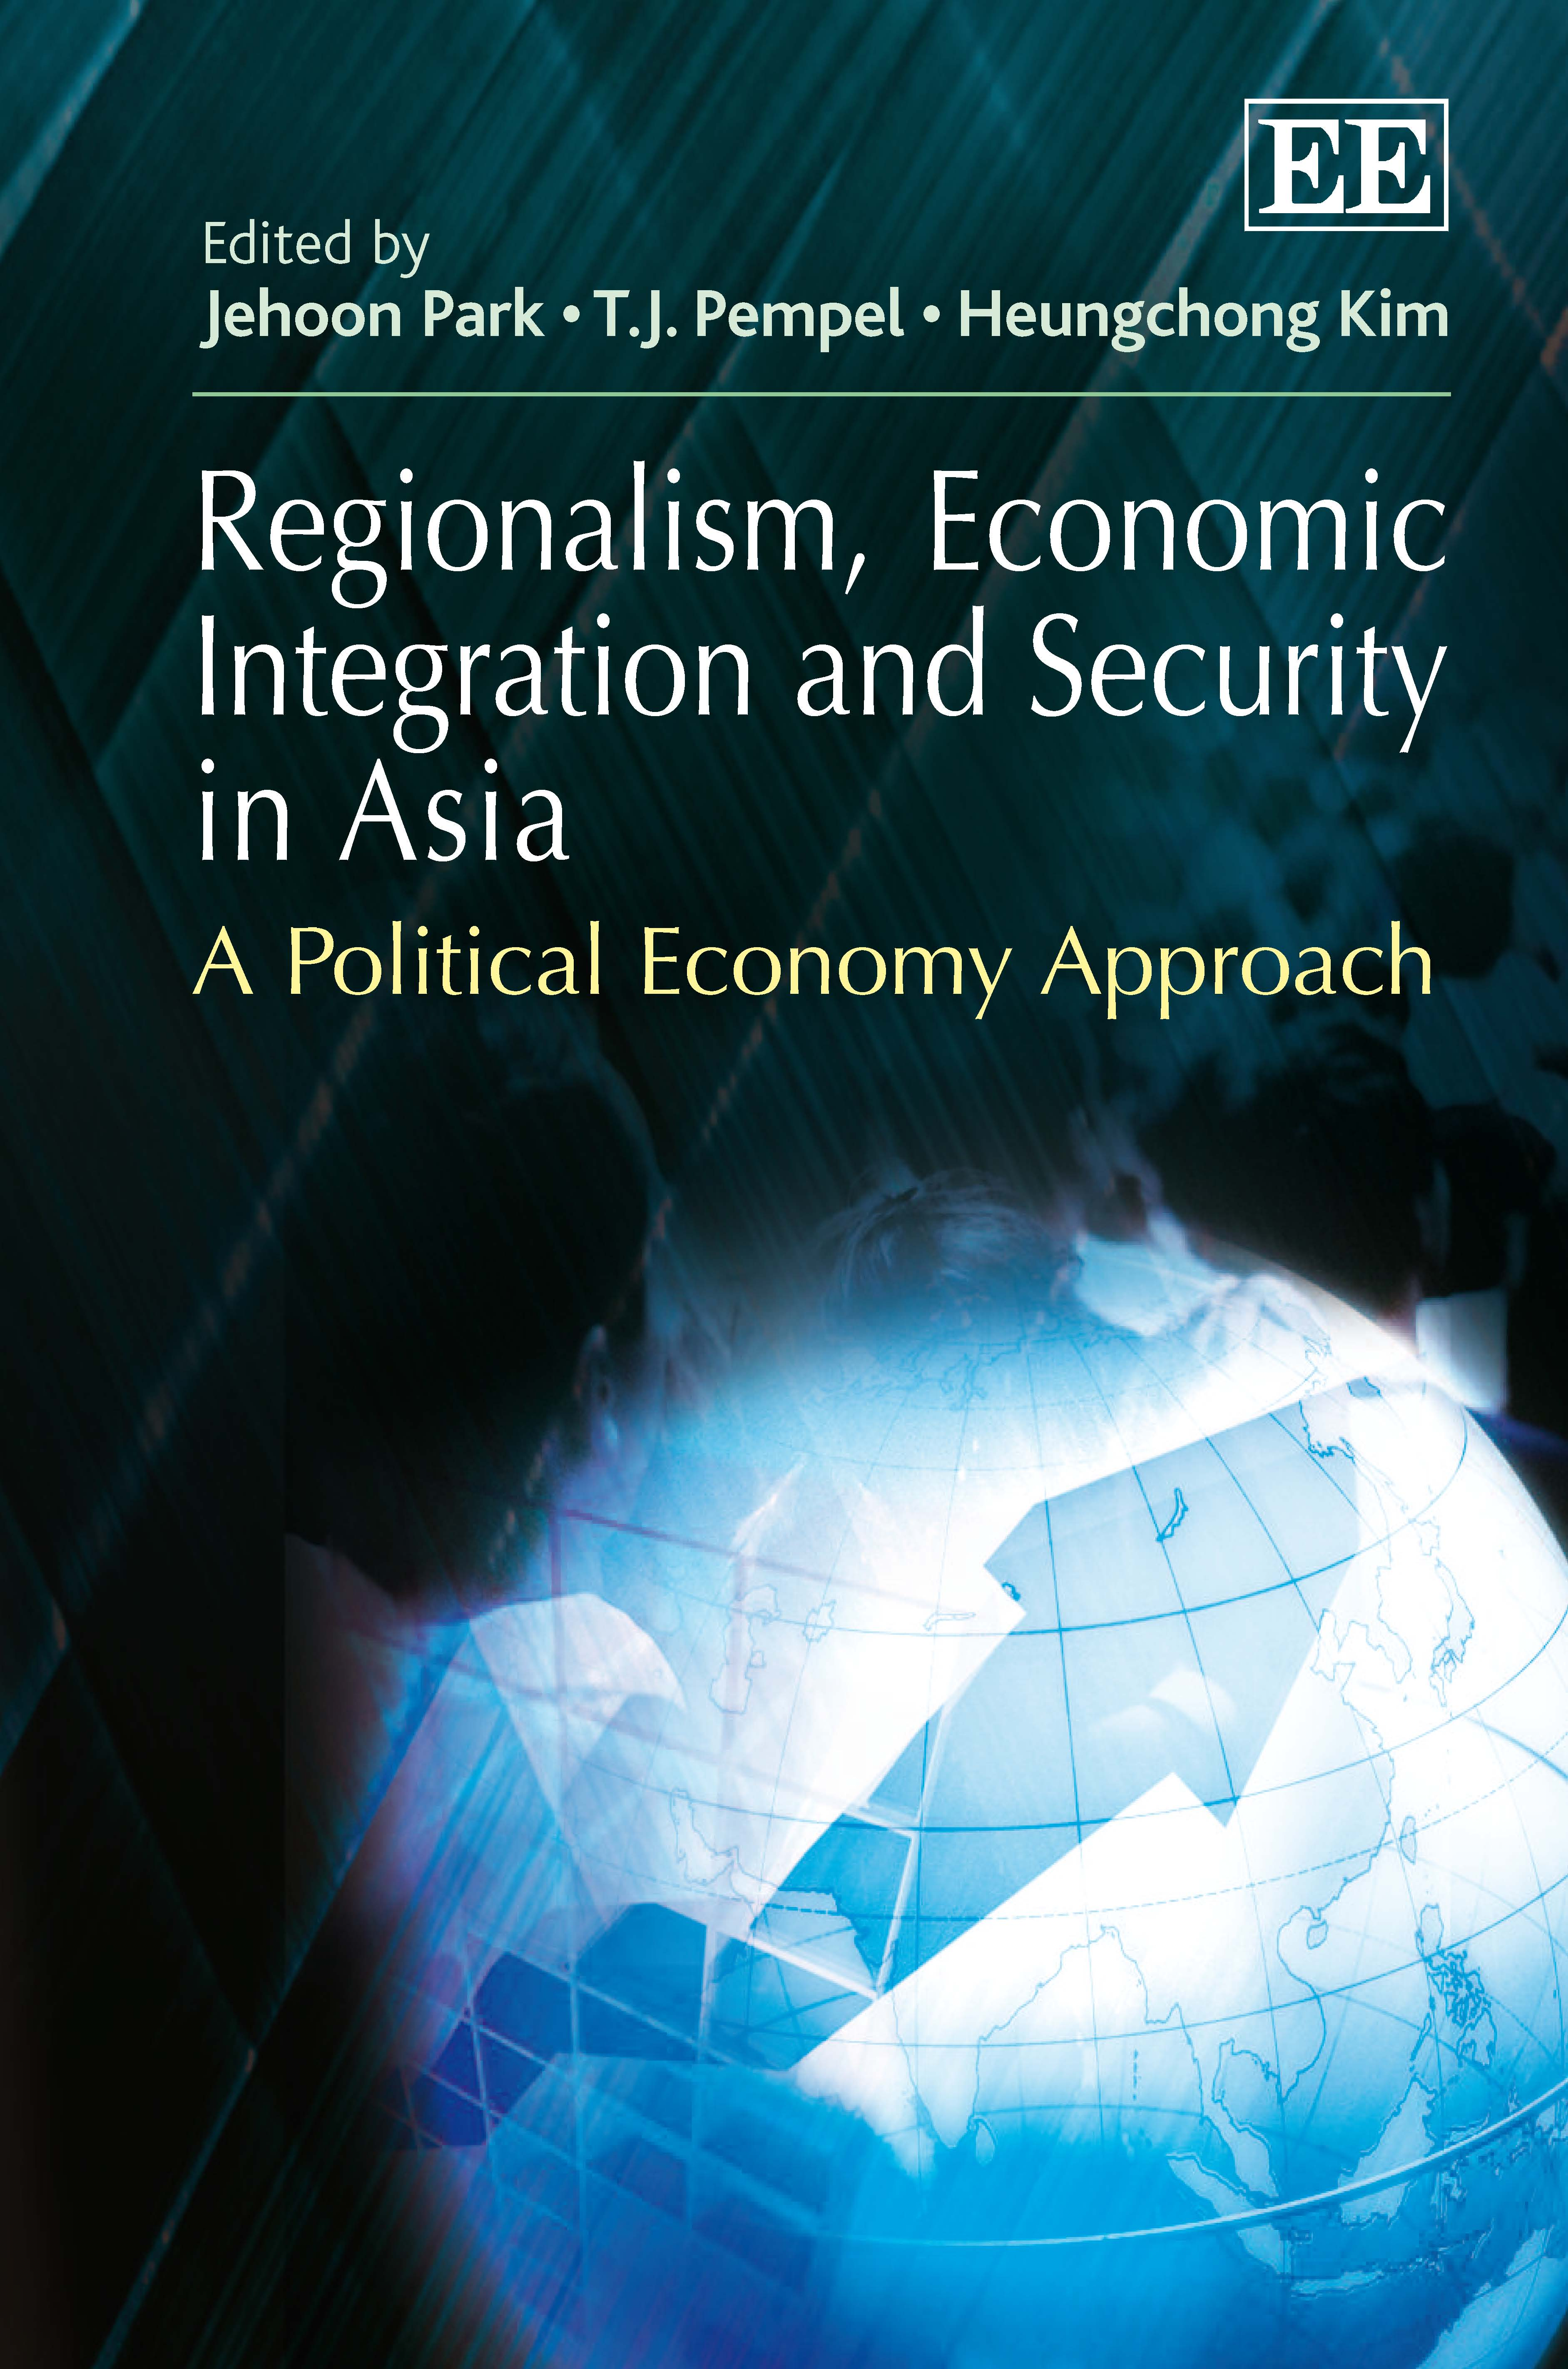 Regionalism, Economic Integration and Security in Asia